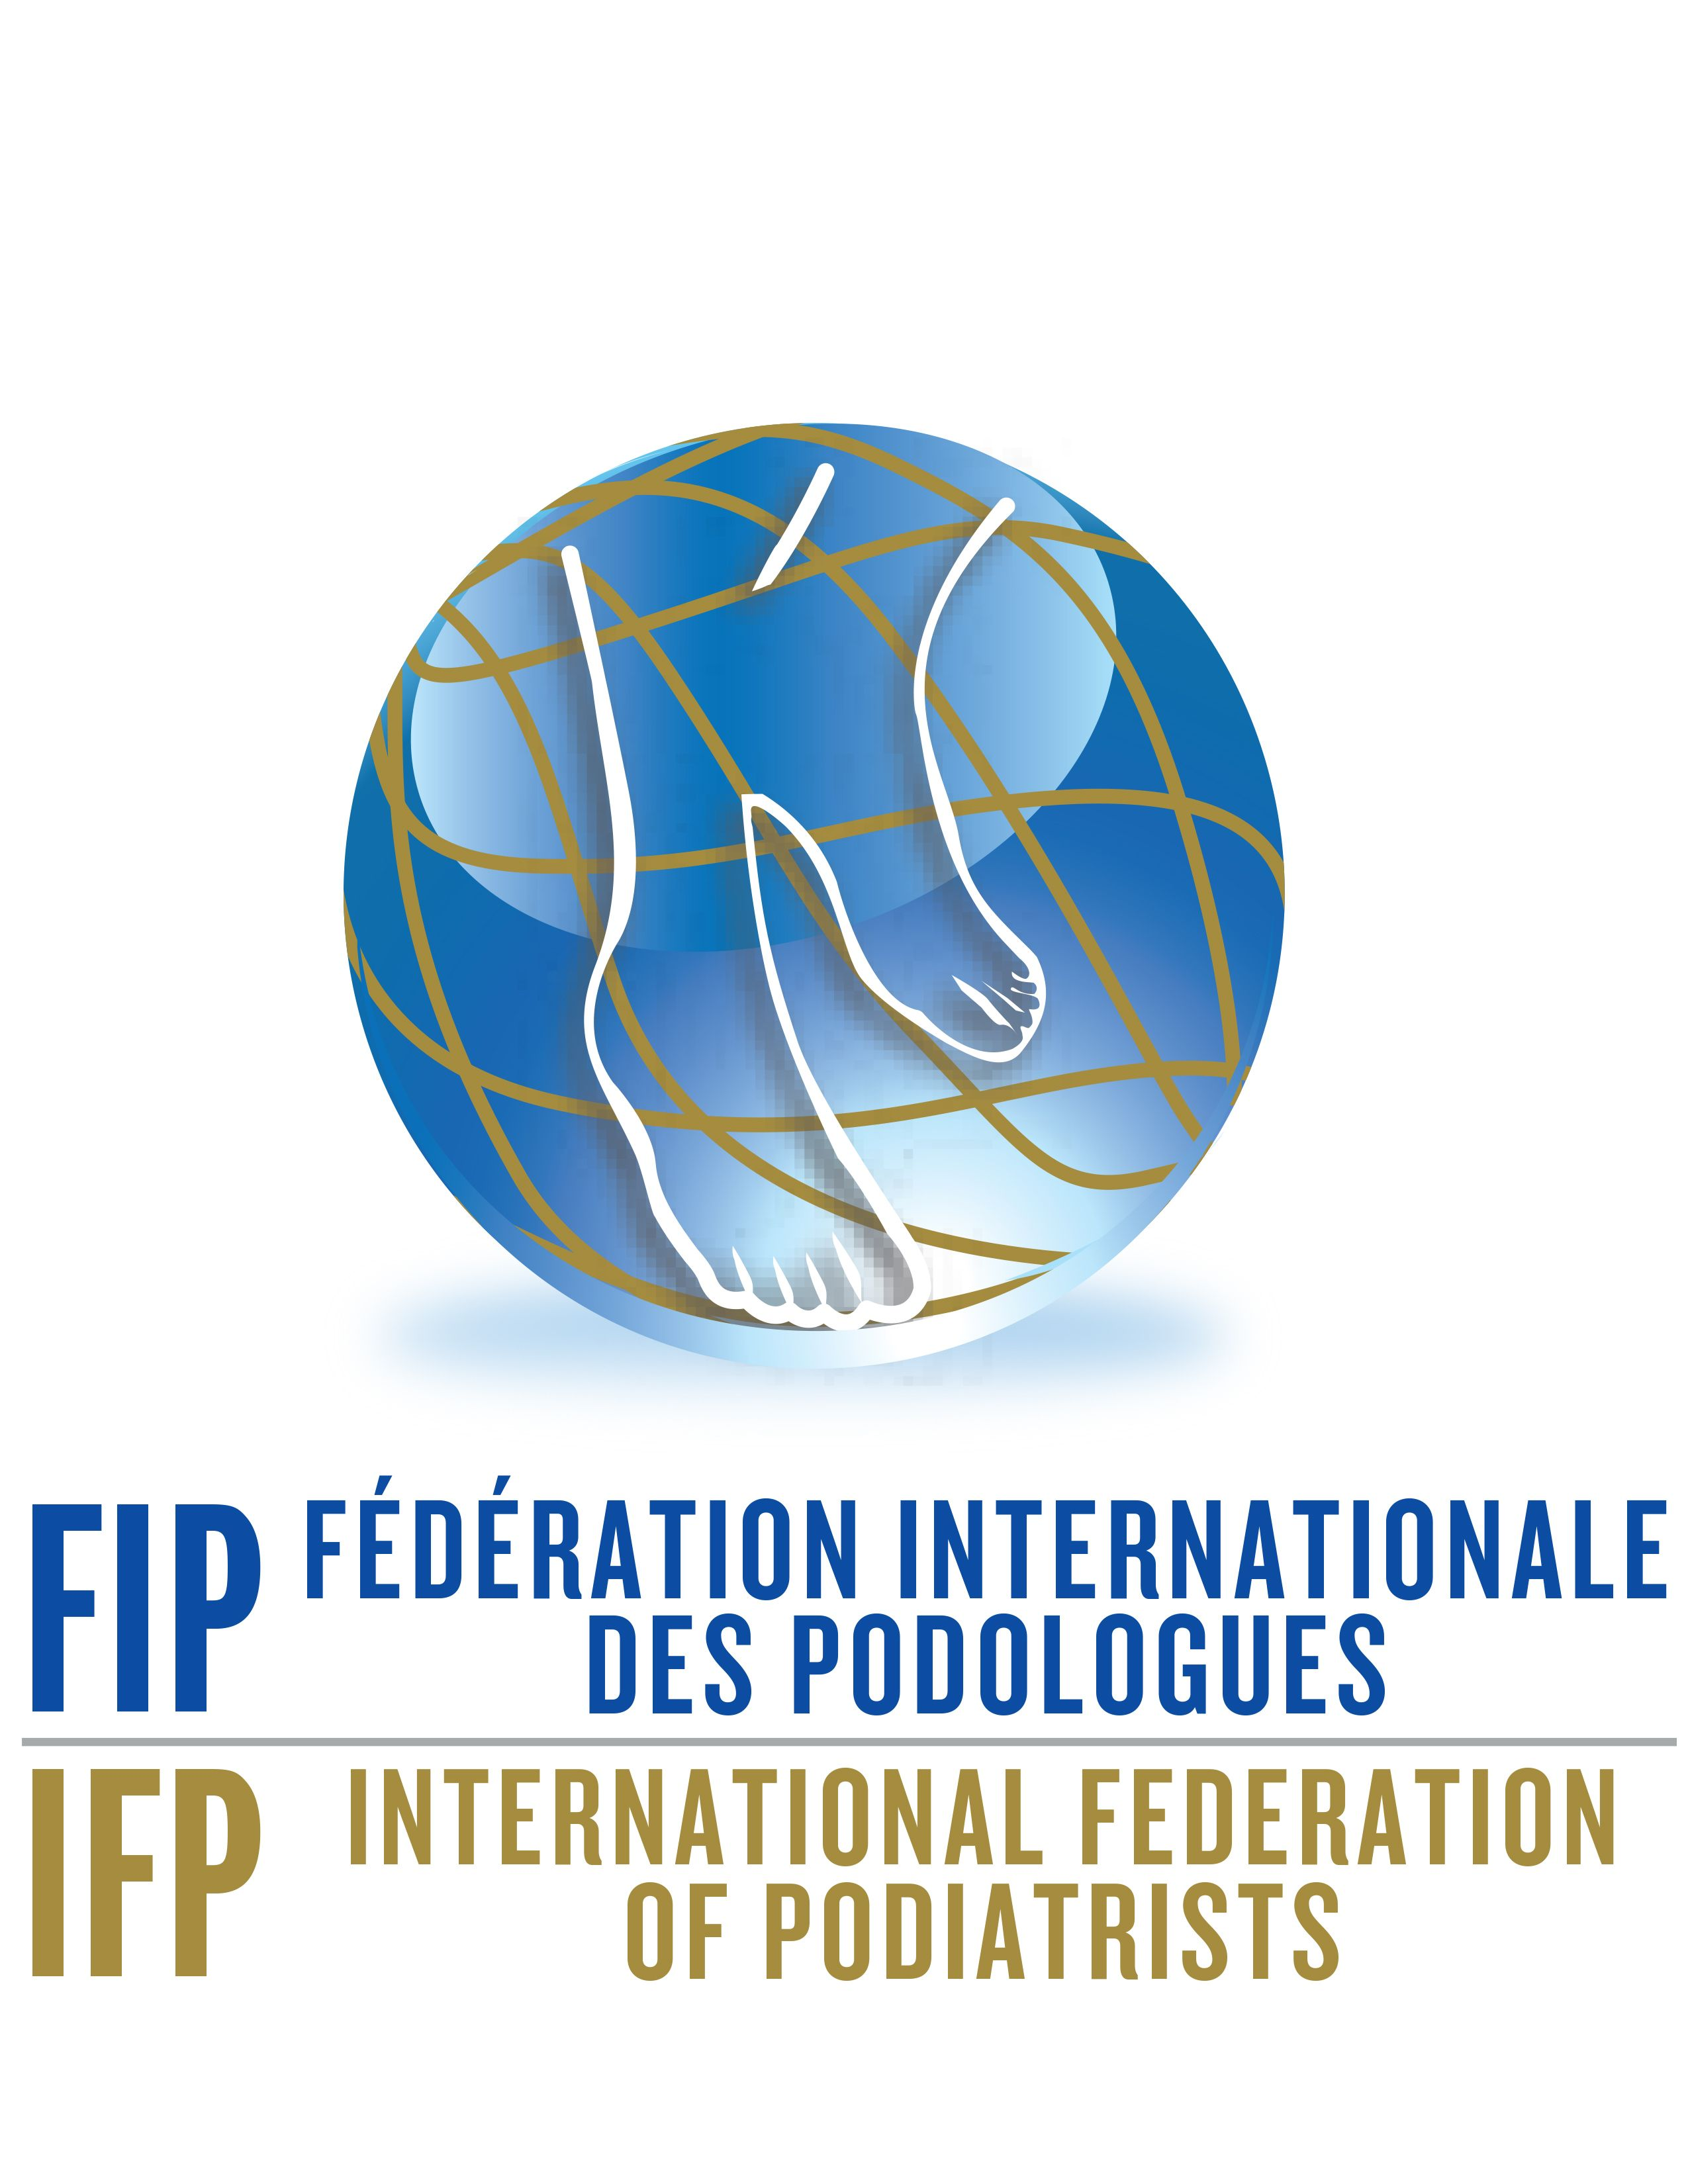 International Federation of Podiatrists